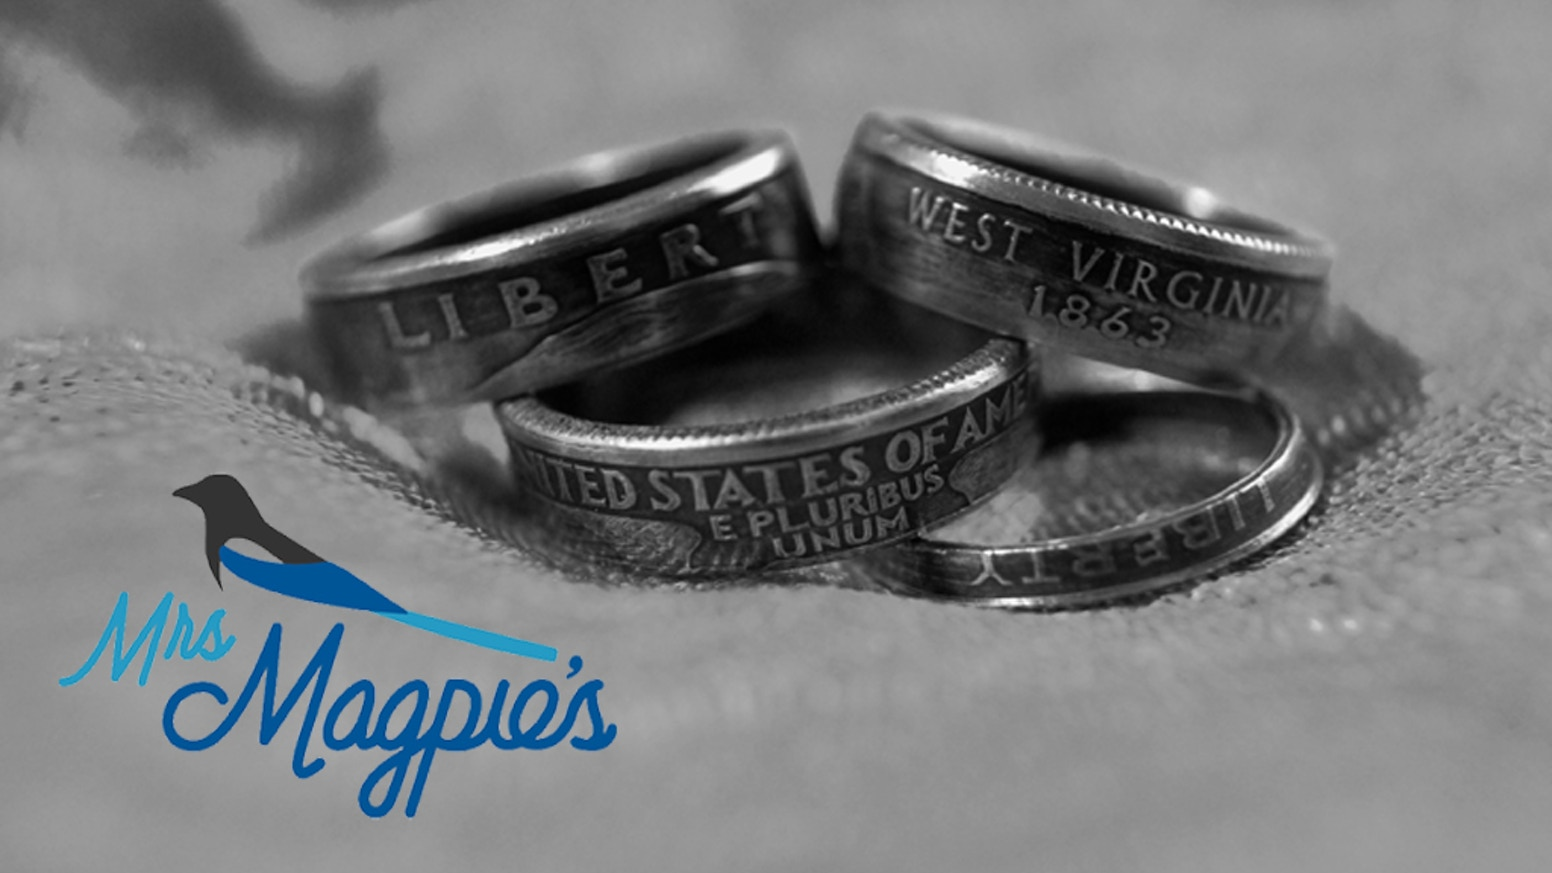 Beautiful rings crafted from U.S. coins by experienced artisans. Equally awesome for men and women. Help us fund our studio expansion!